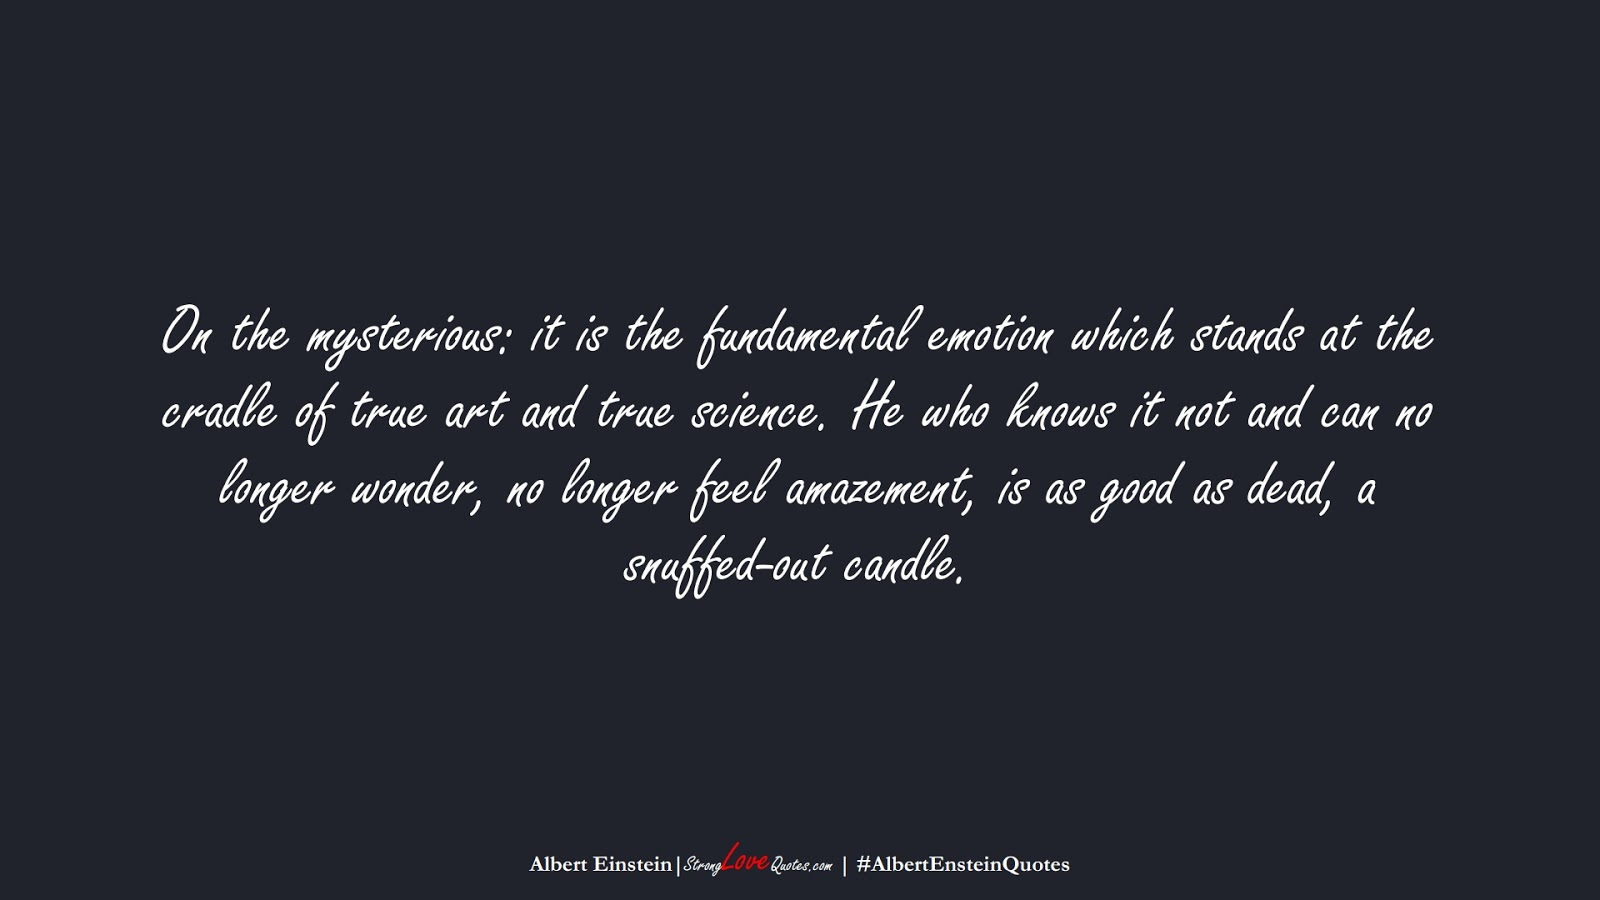 On the mysterious: it is the fundamental emotion which stands at the cradle of true art and true science. He who knows it not and can no longer wonder, no longer feel amazement, is as good as dead, a snuffed-out candle. (Albert Einstein);  #AlbertEnsteinQuotes